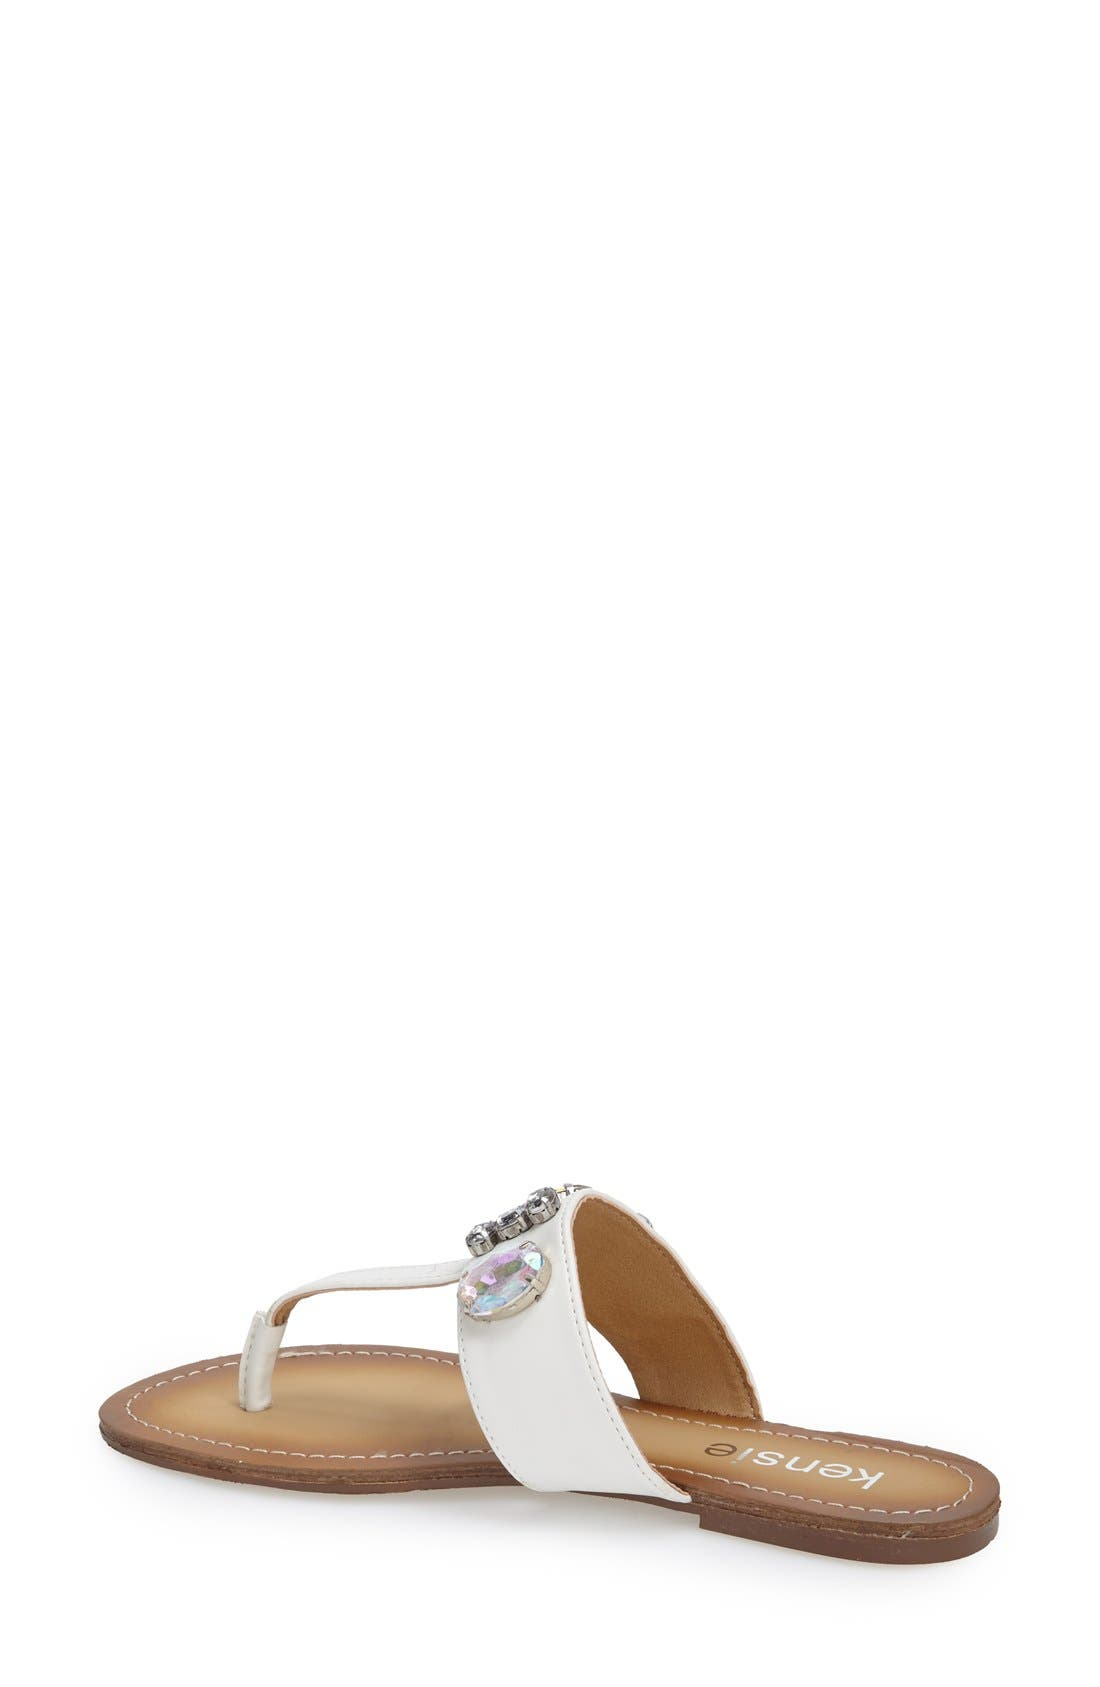 Alternate Image 2  - kensie 'Tatianly' Thong Sandal (Women)